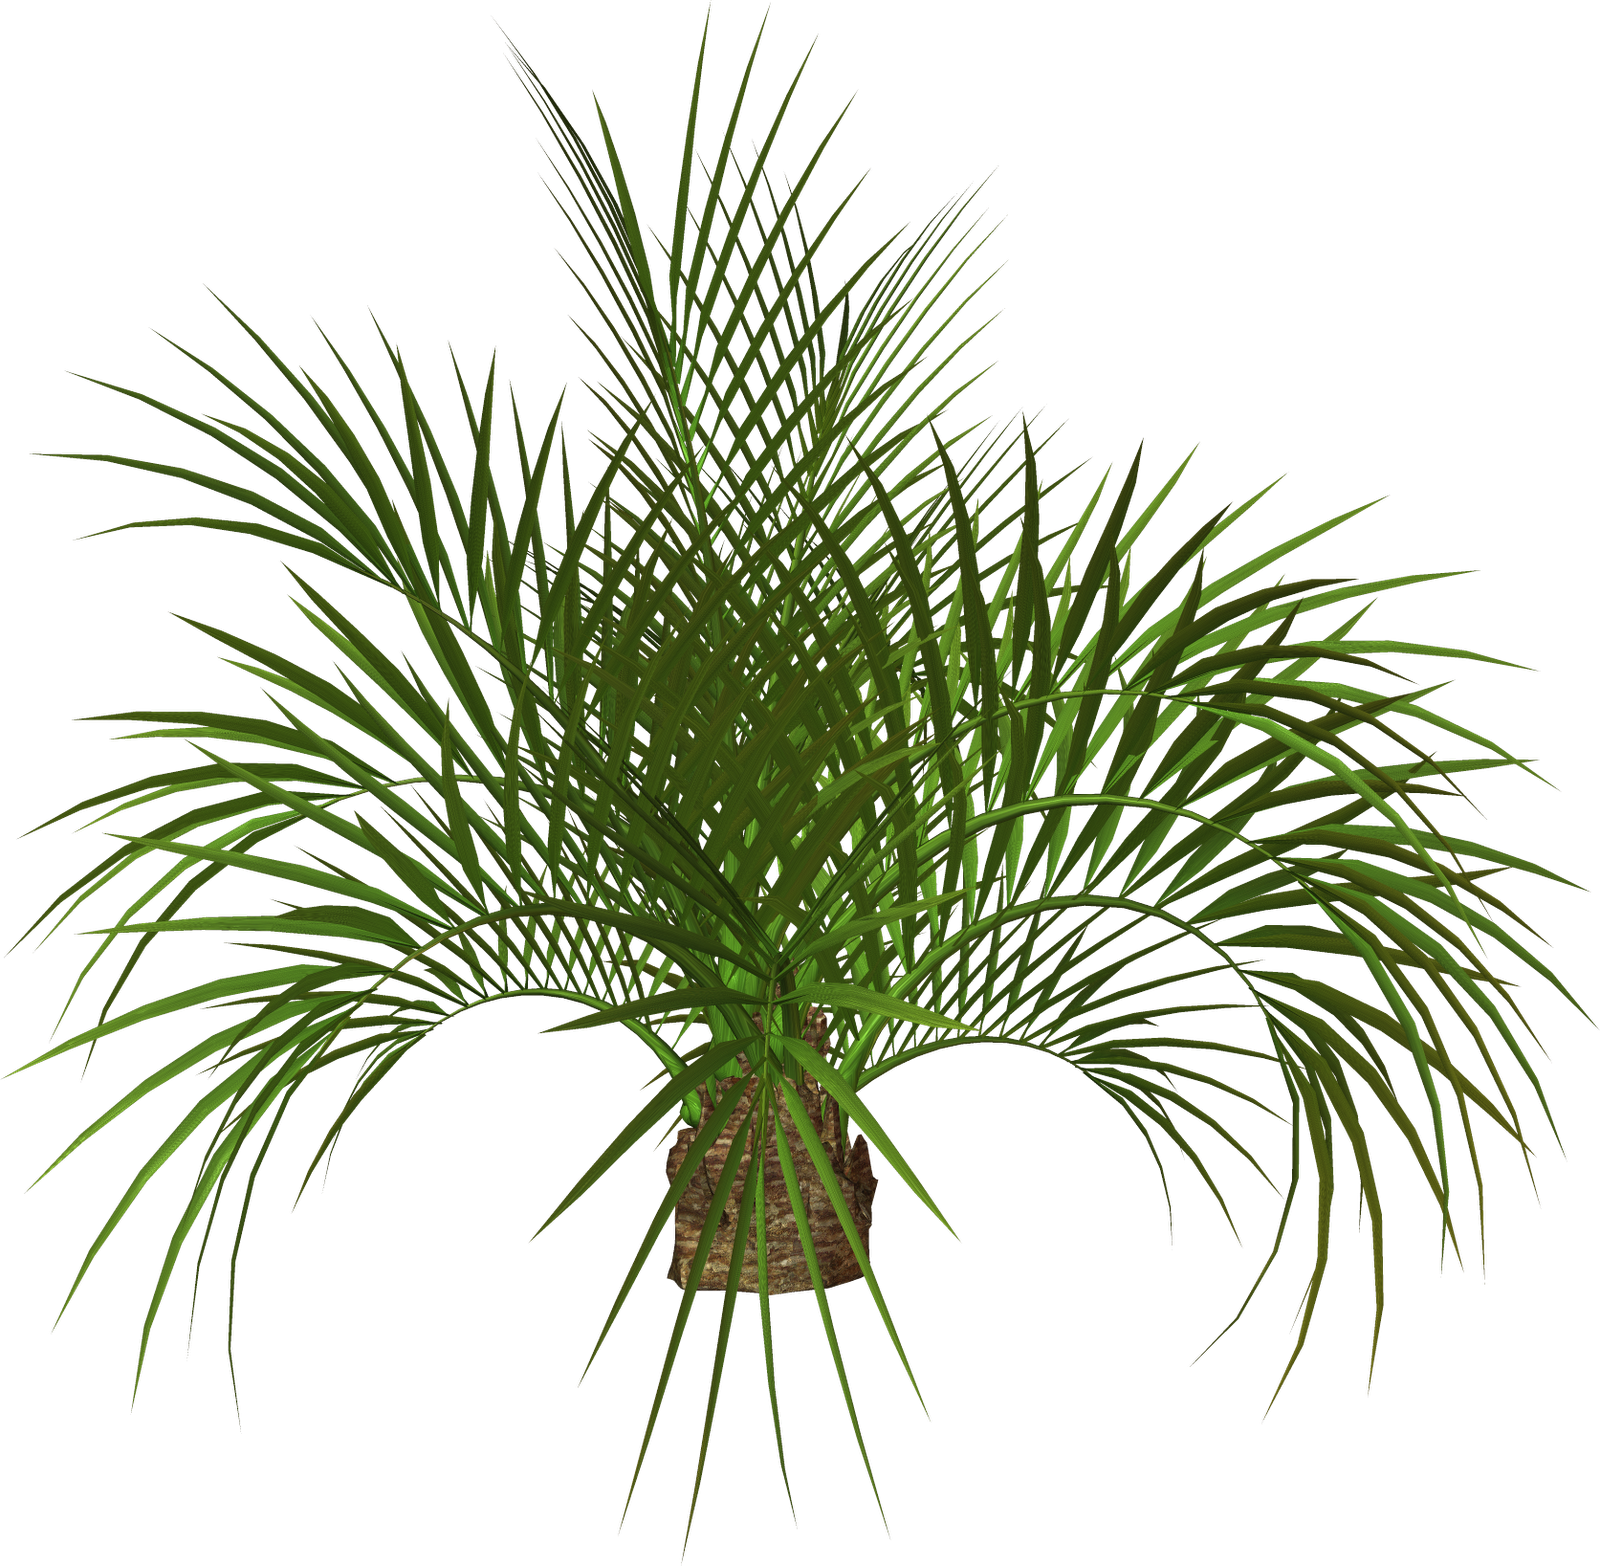 palm tree clip art - photo #41